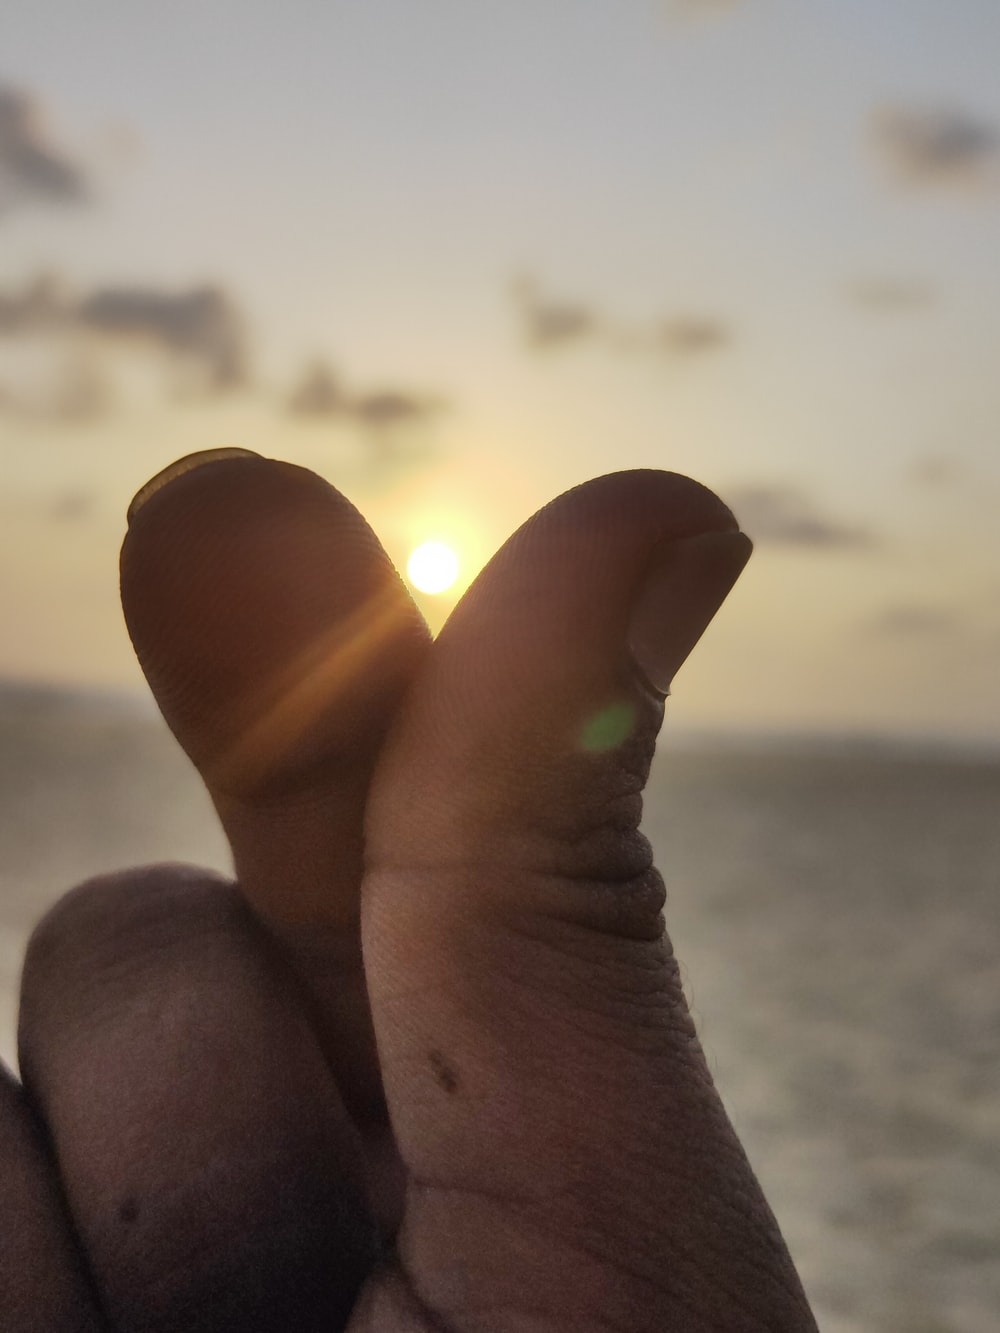 person's right hand at sunset